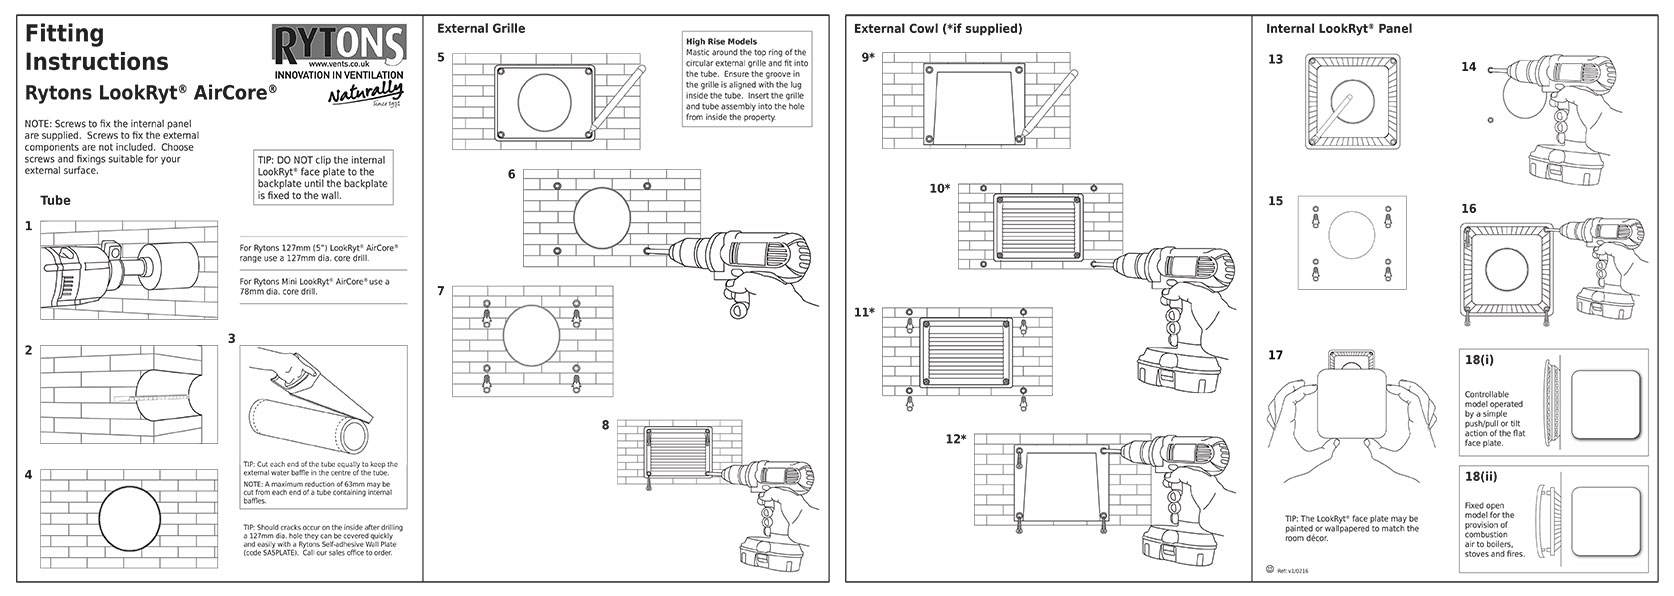 rytons lookryt aircore fitting instruction sheet